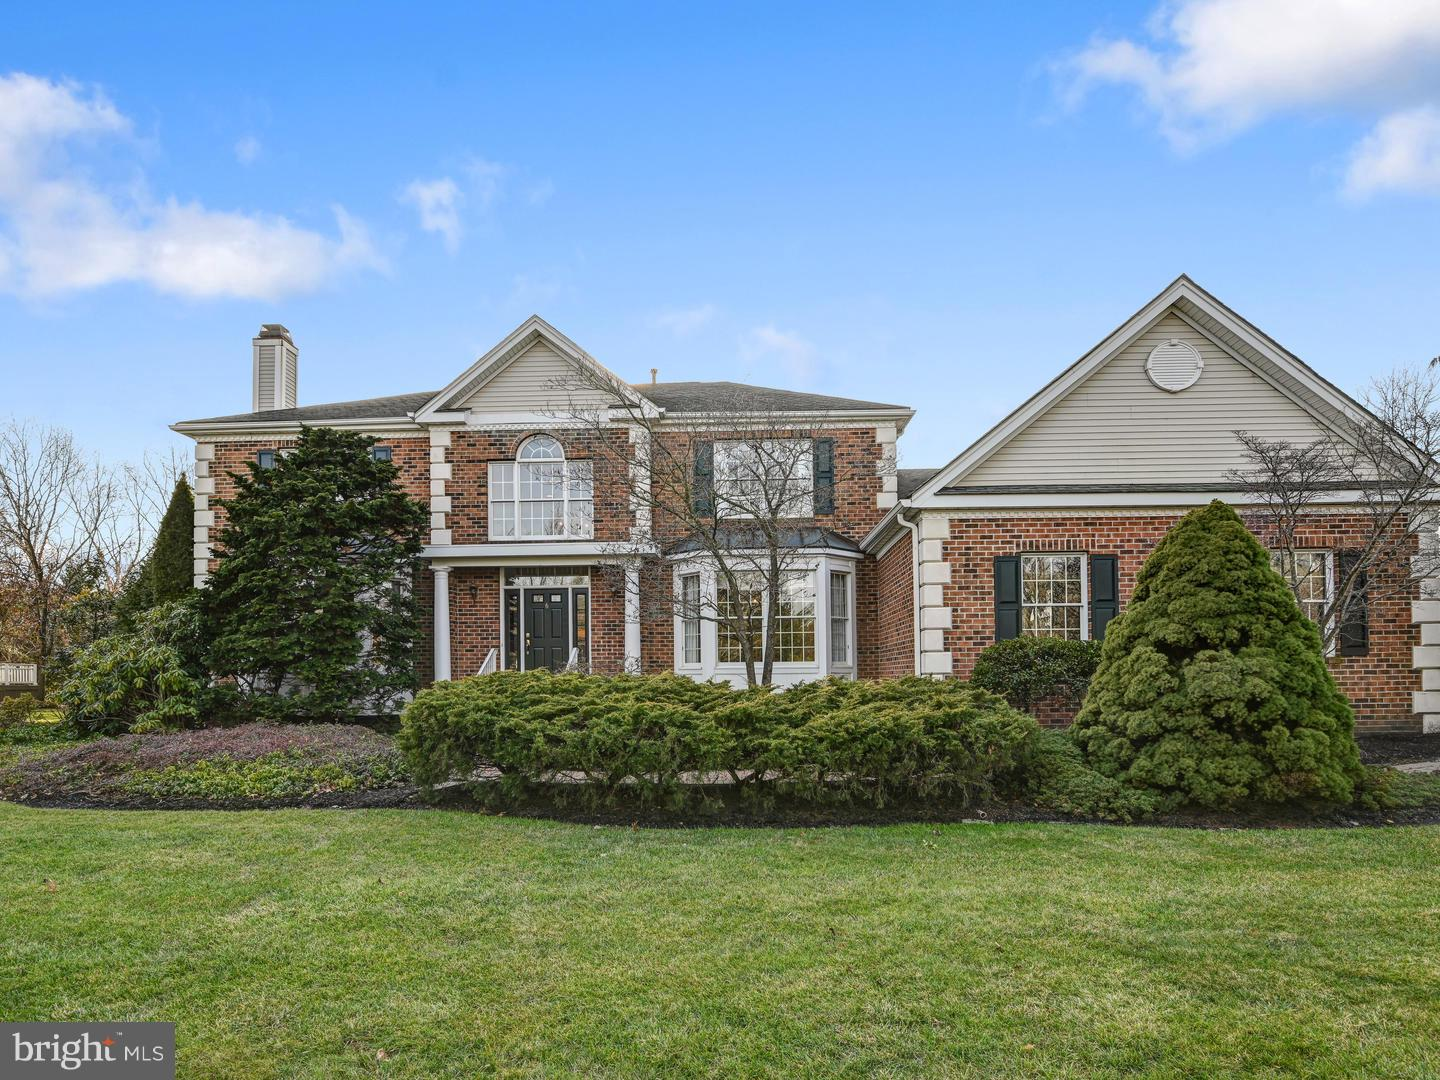 6 PERRINE LANE, CRANBURY, NJ 08512